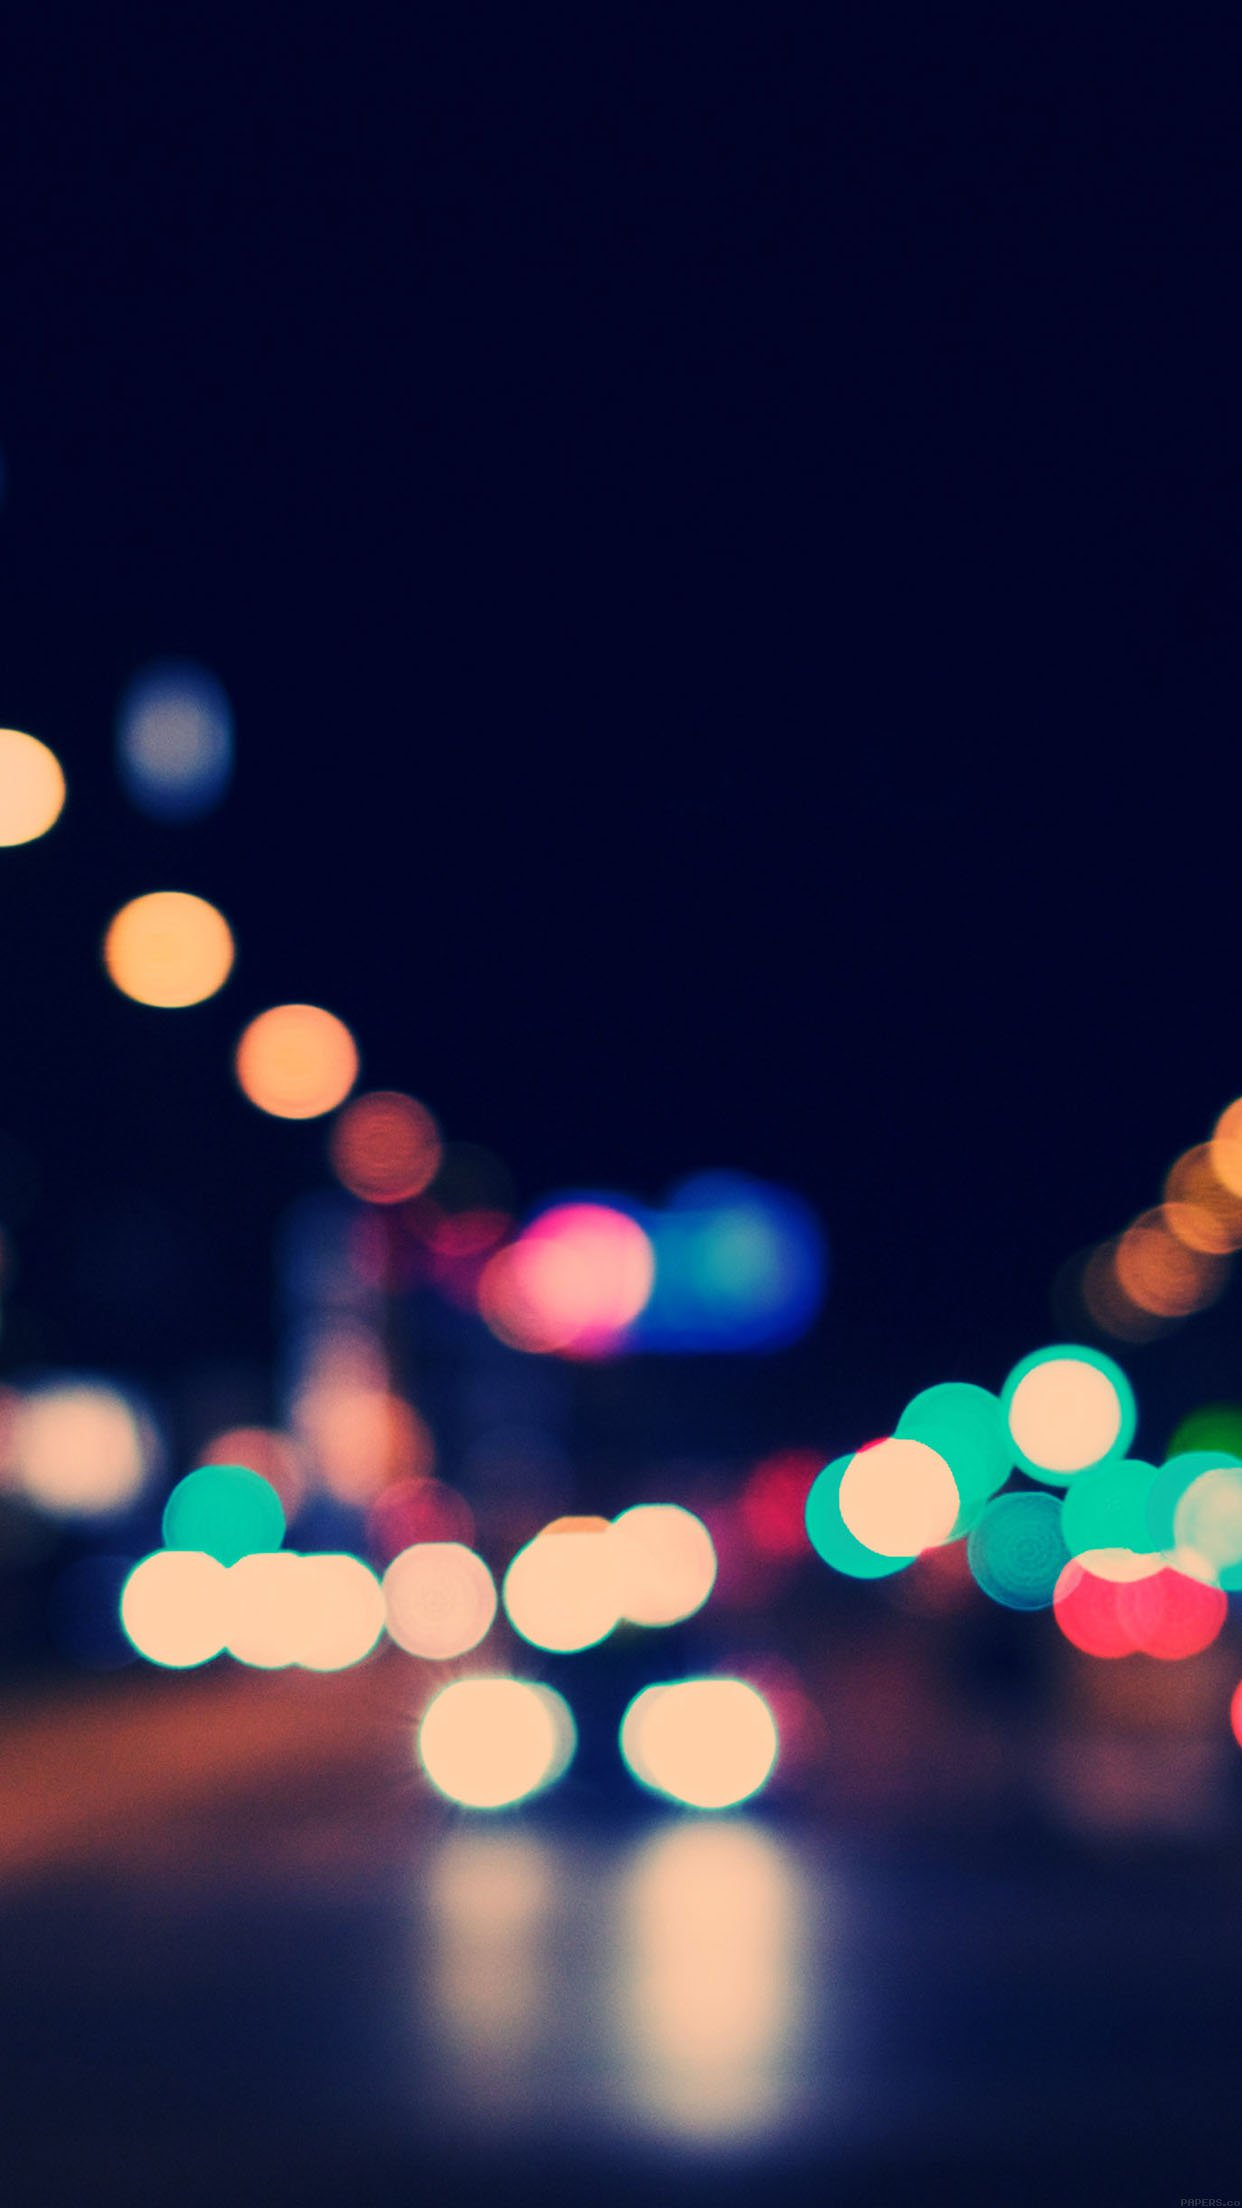 Wallpaper Drunk Night Bokeh Android wallpaper